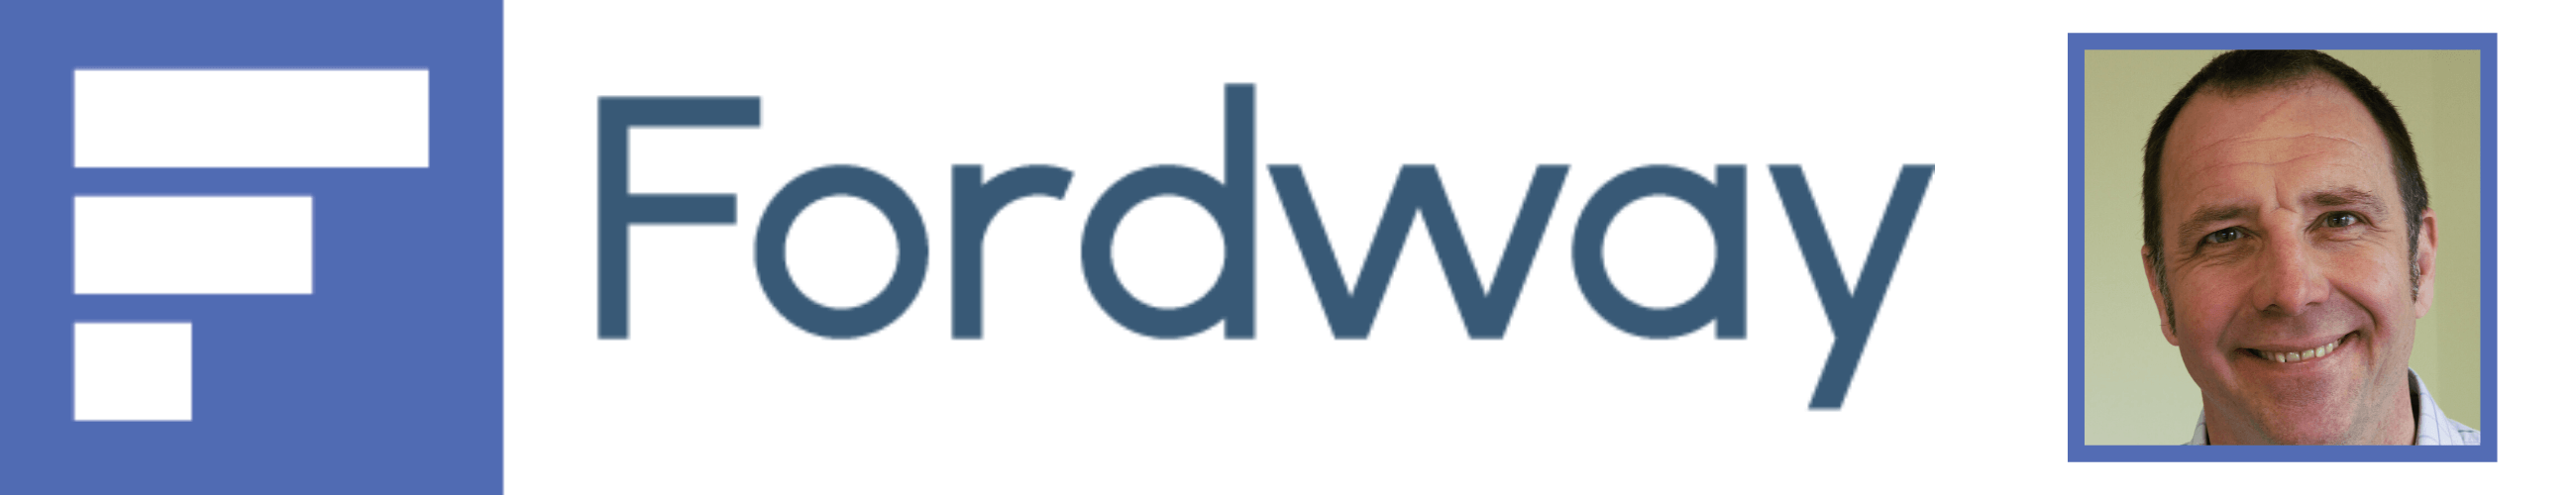 Fordway EOS case study